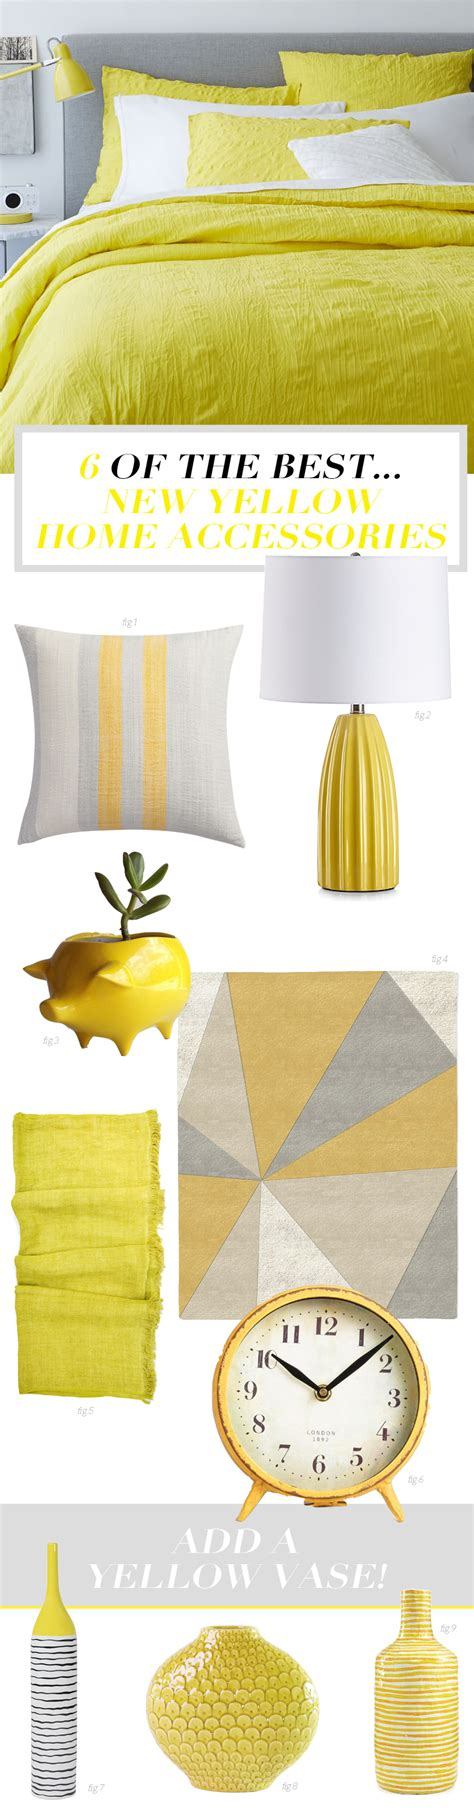 Bright Yellow Accessories by Six Of The Best Yellow Home Accessories Bright Bazaar By